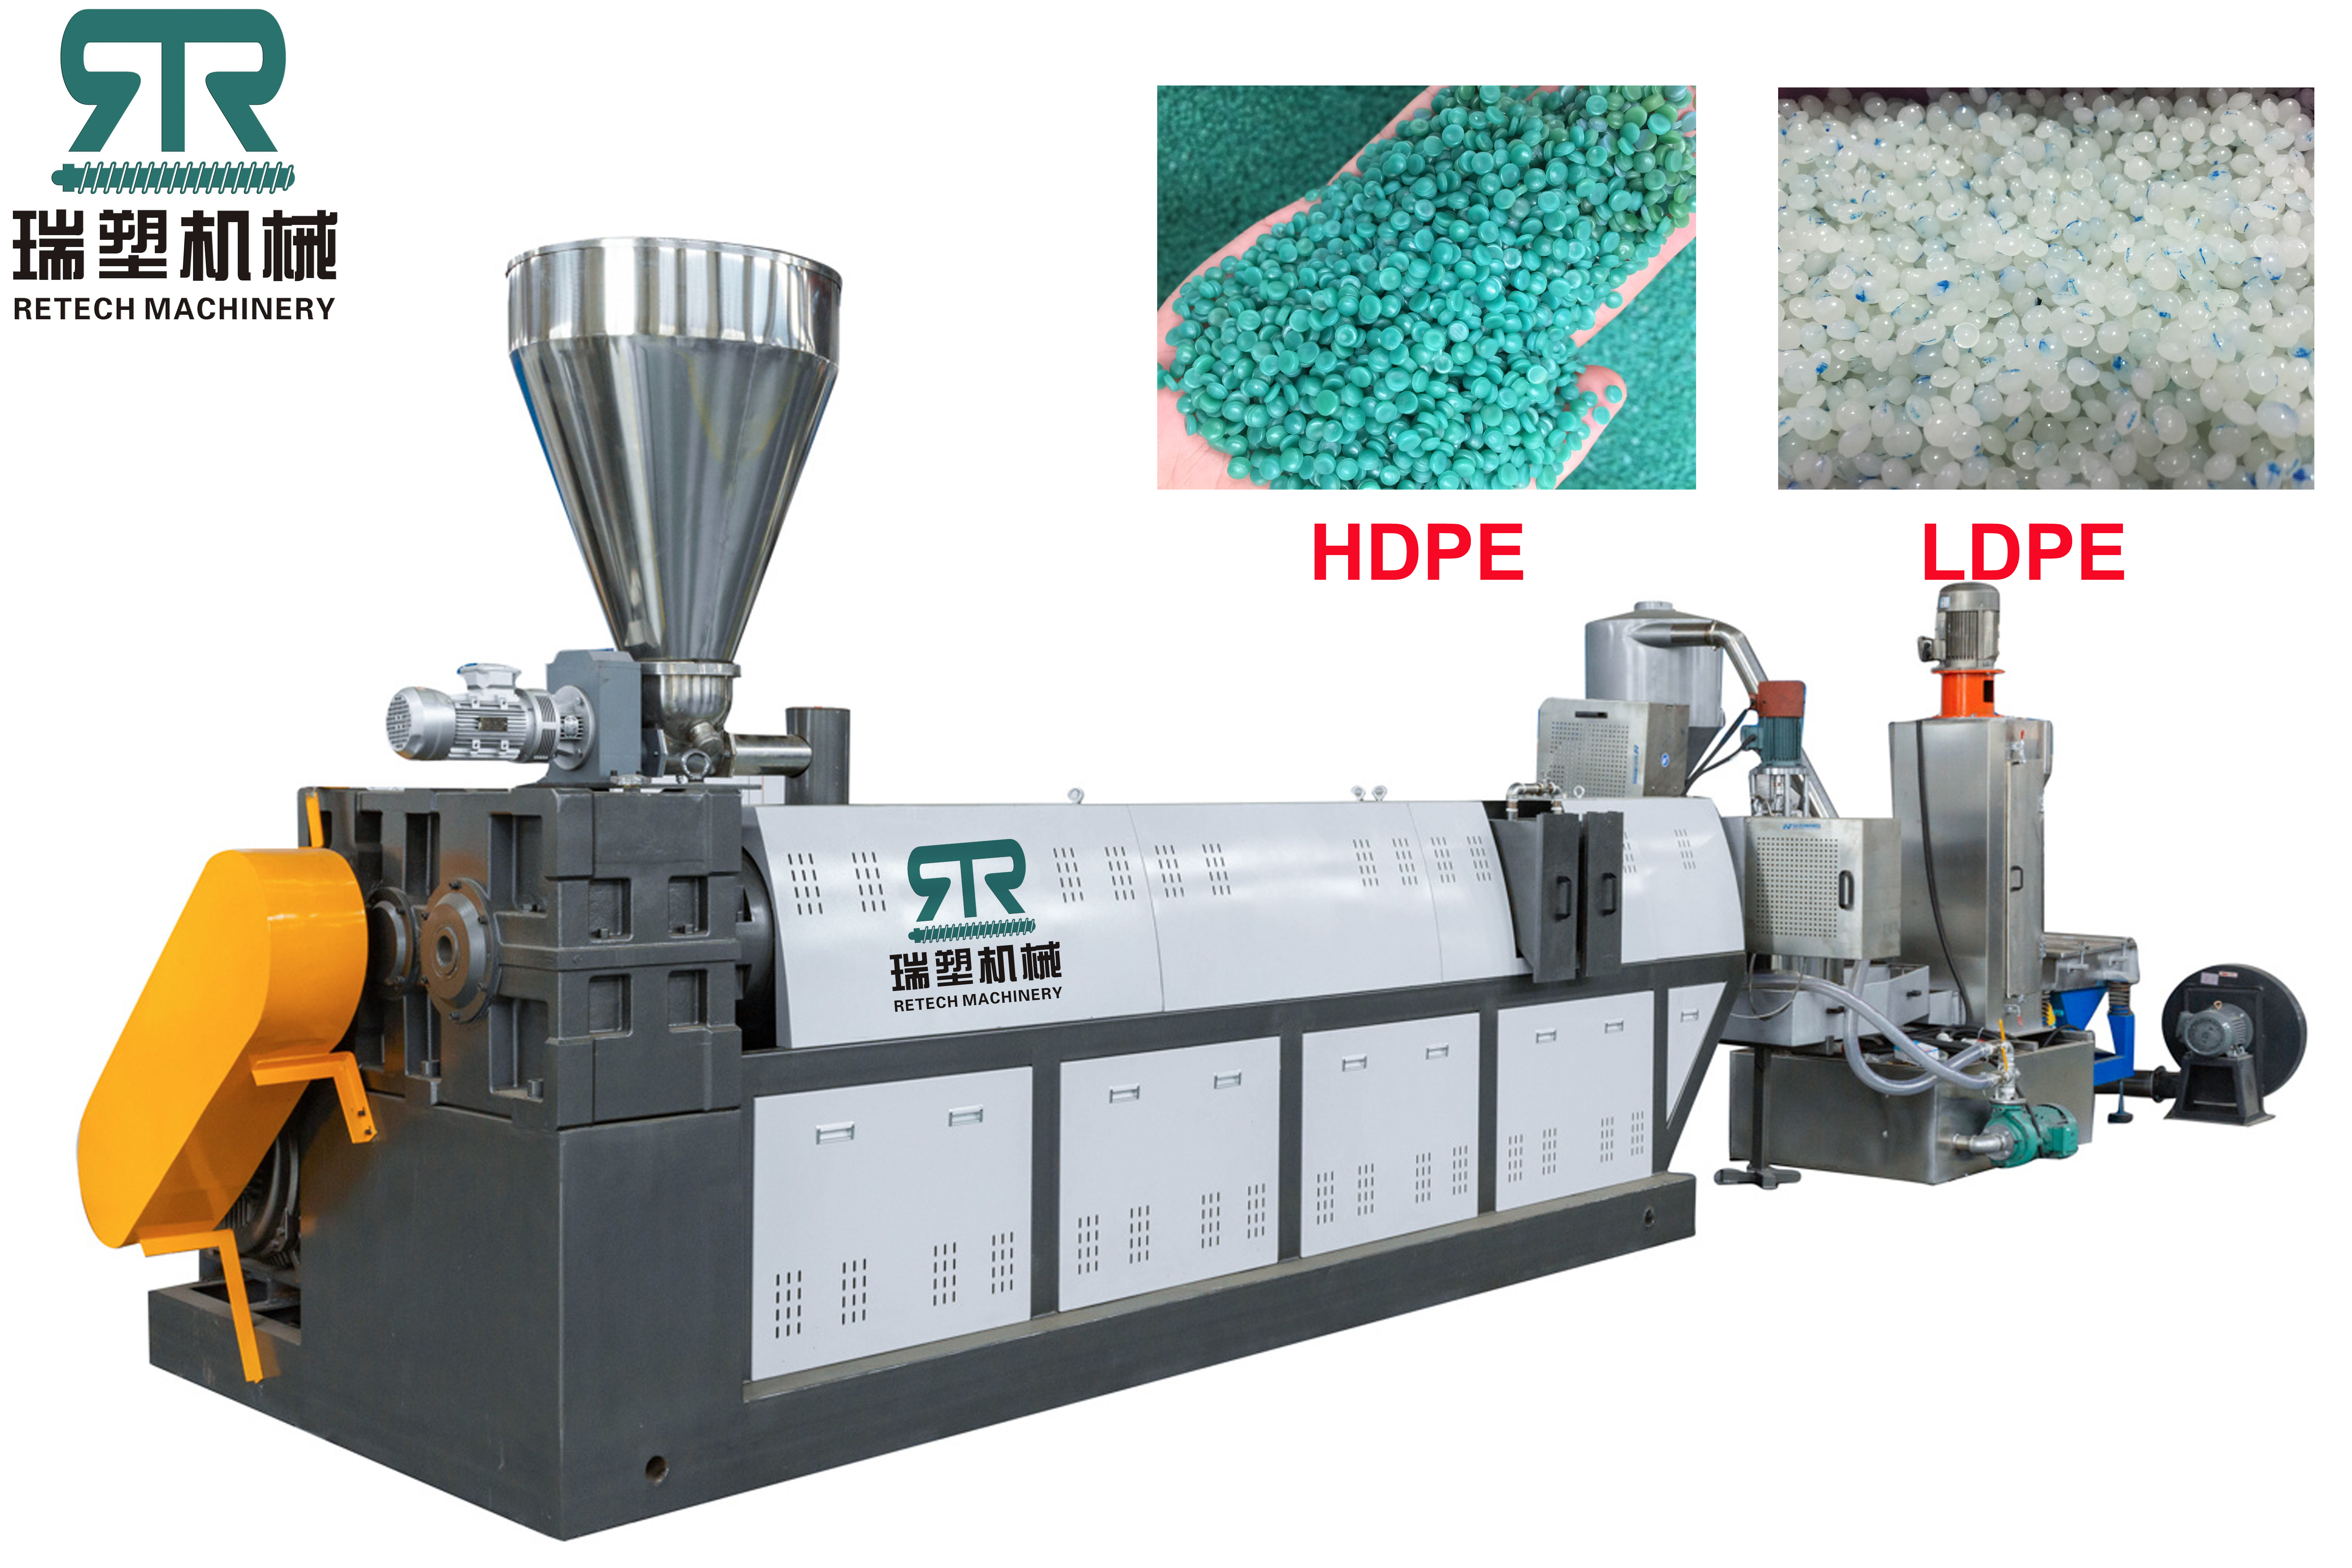 HDPE PP Bottle Pipes Lumps Rigid Flakes Single Stage Die Face Cutting Pelletizing Line